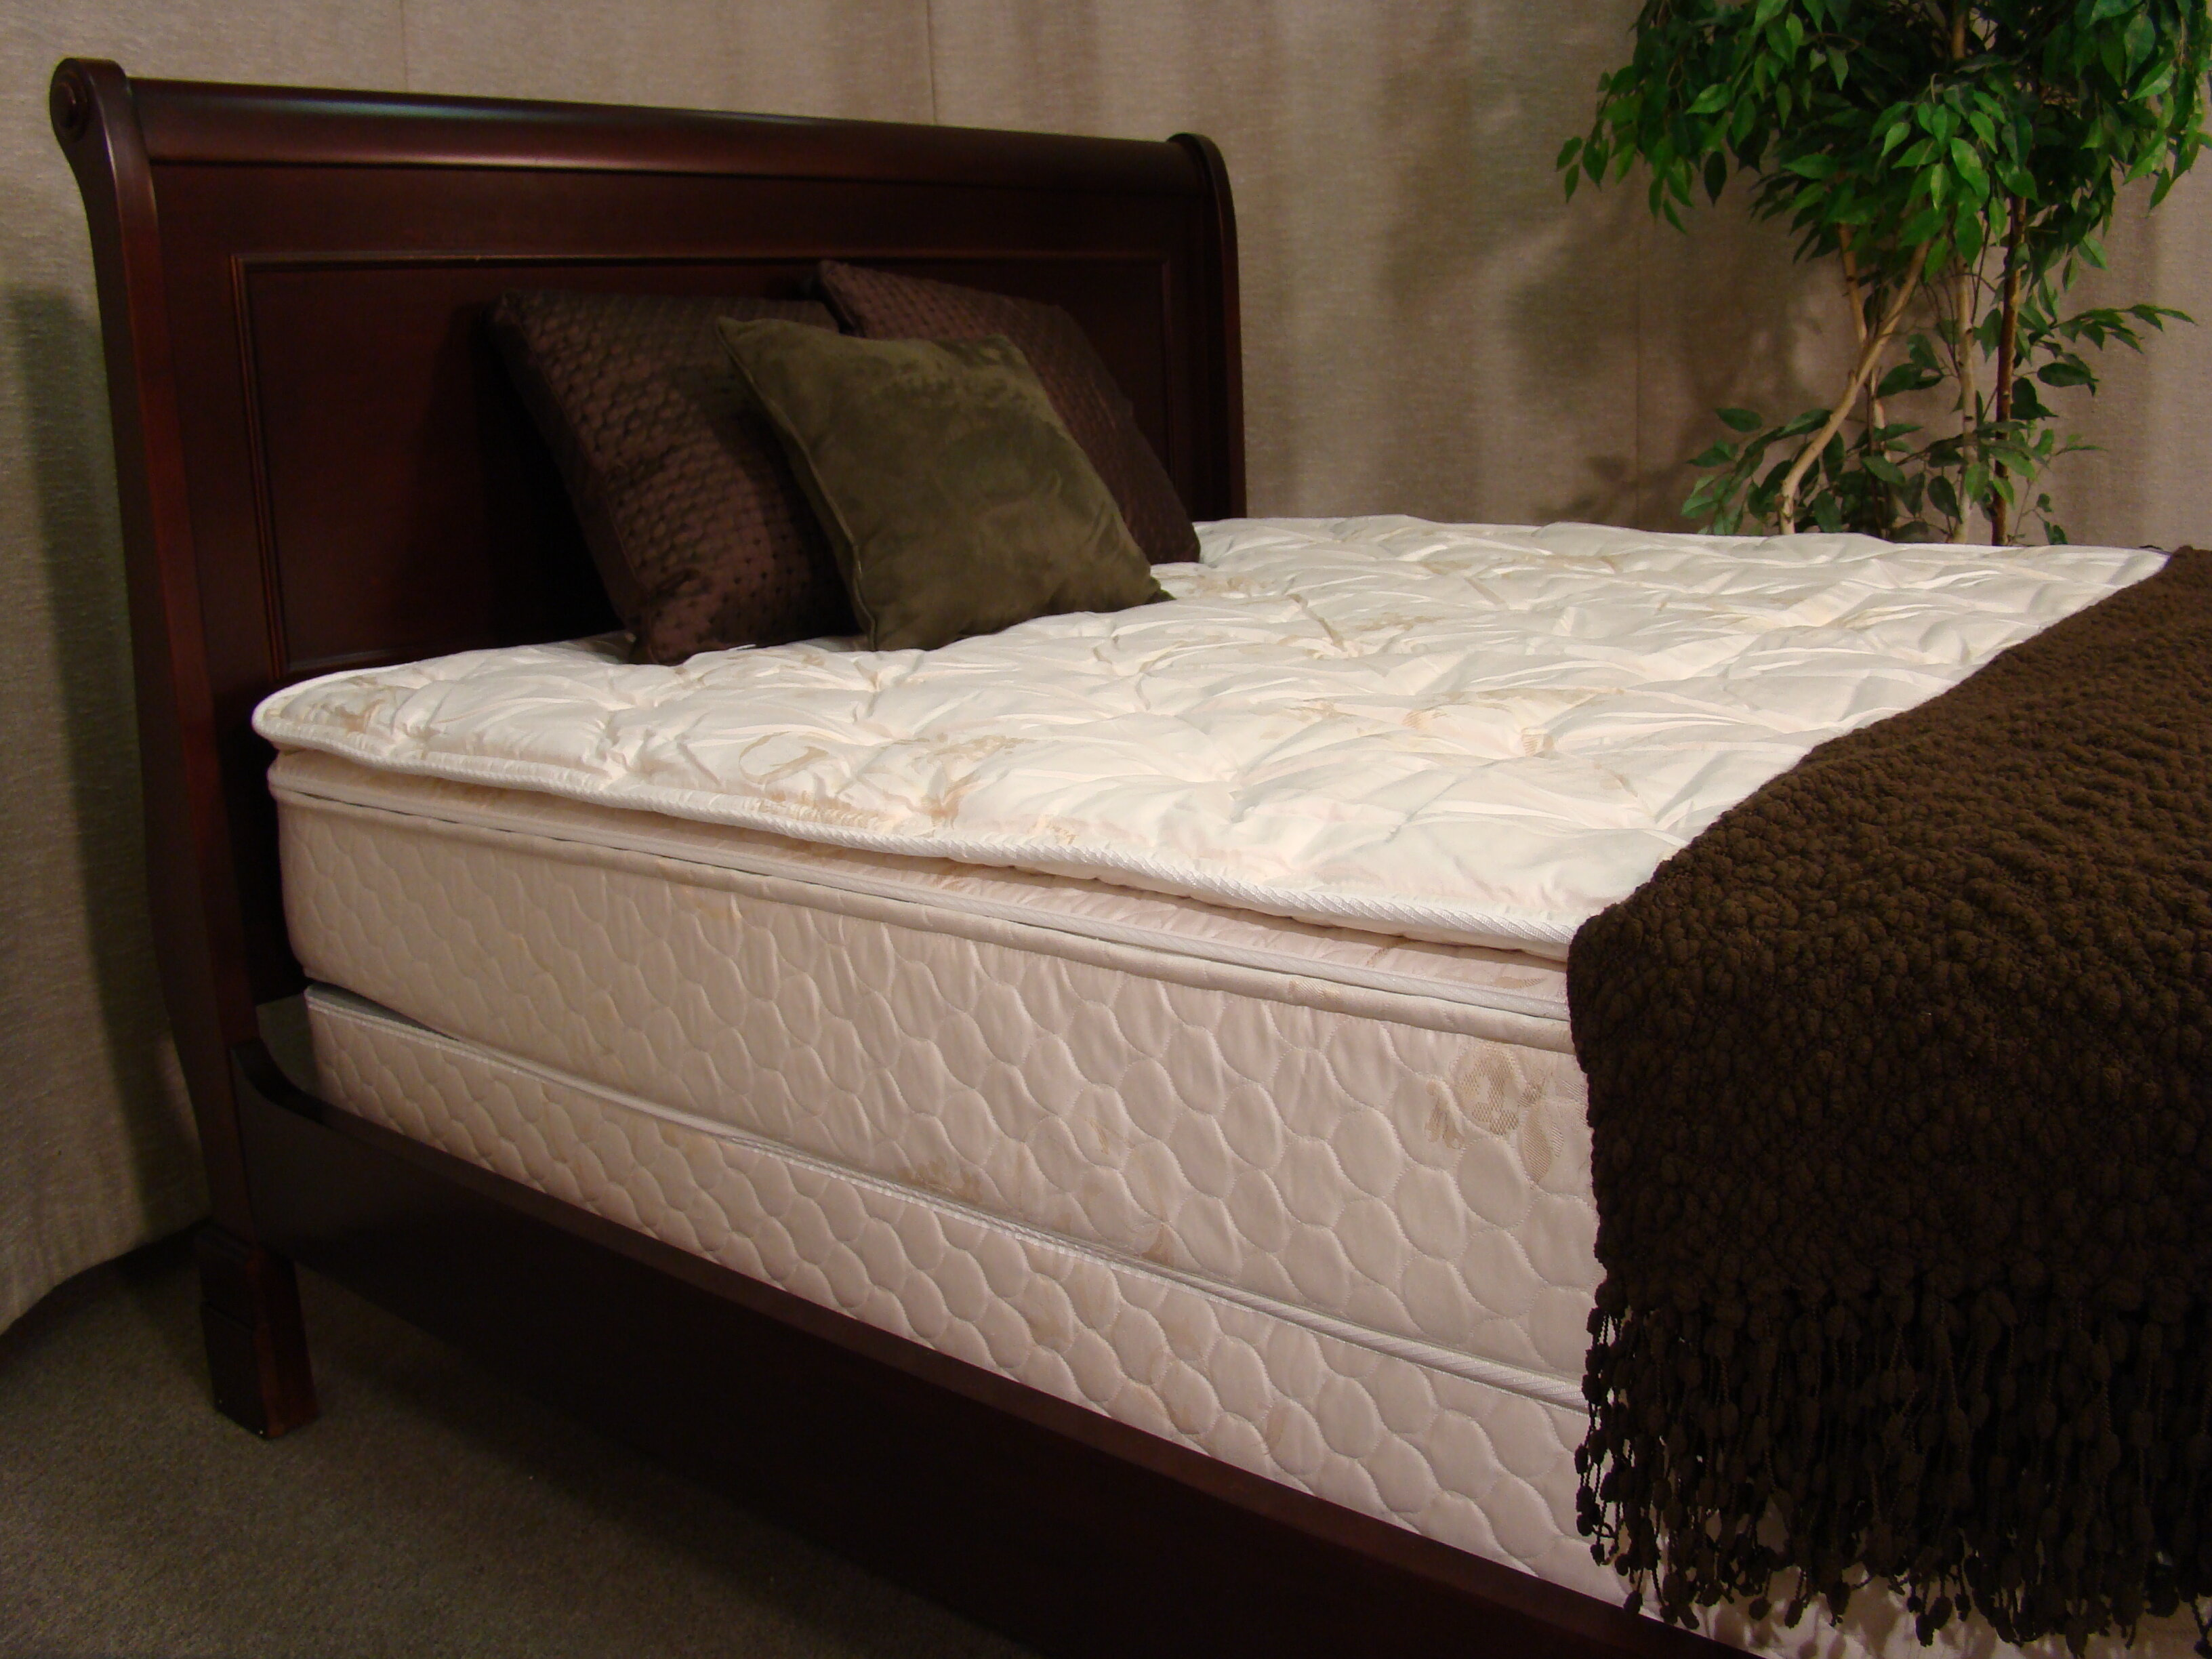 frame alternating aire loss and system pressure mattress air replacement index with low med